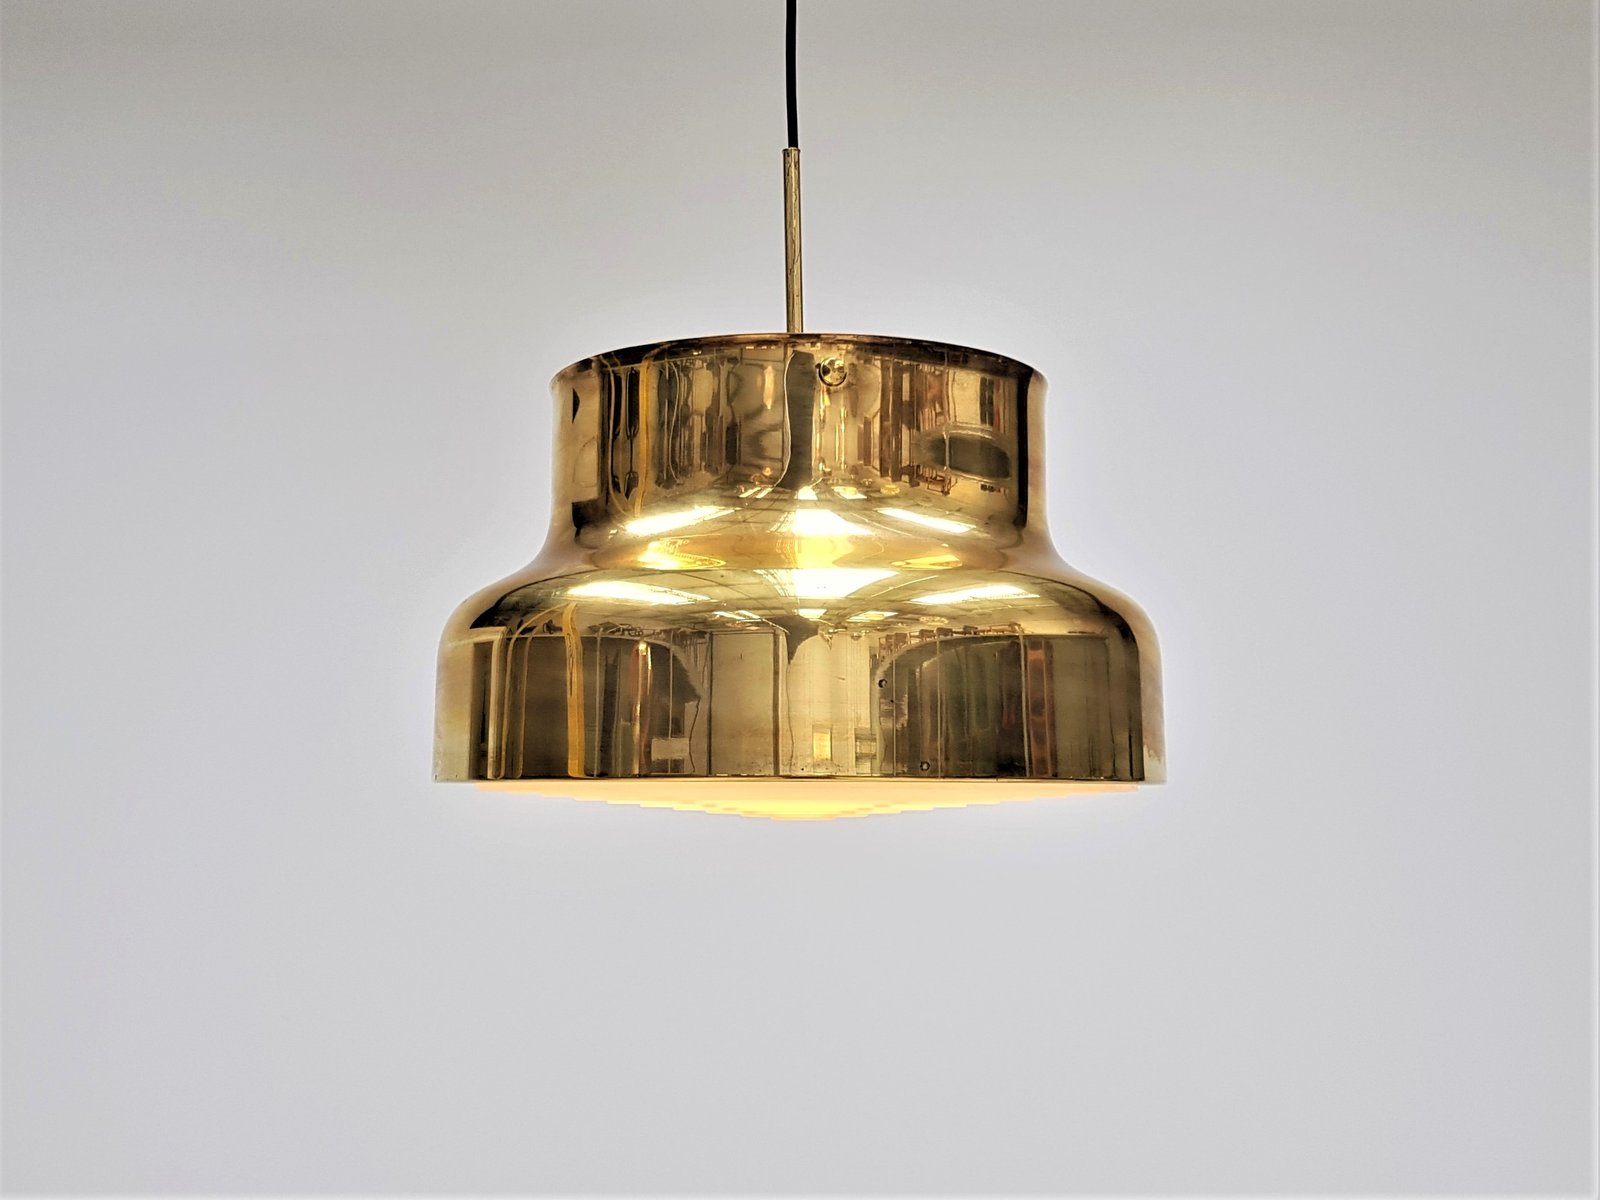 Large bumling brass ceiling pendant by anders pehrson for atelj large bumling brass ceiling pendant by anders pehrson for atelj lyktan 1970s aloadofball Images